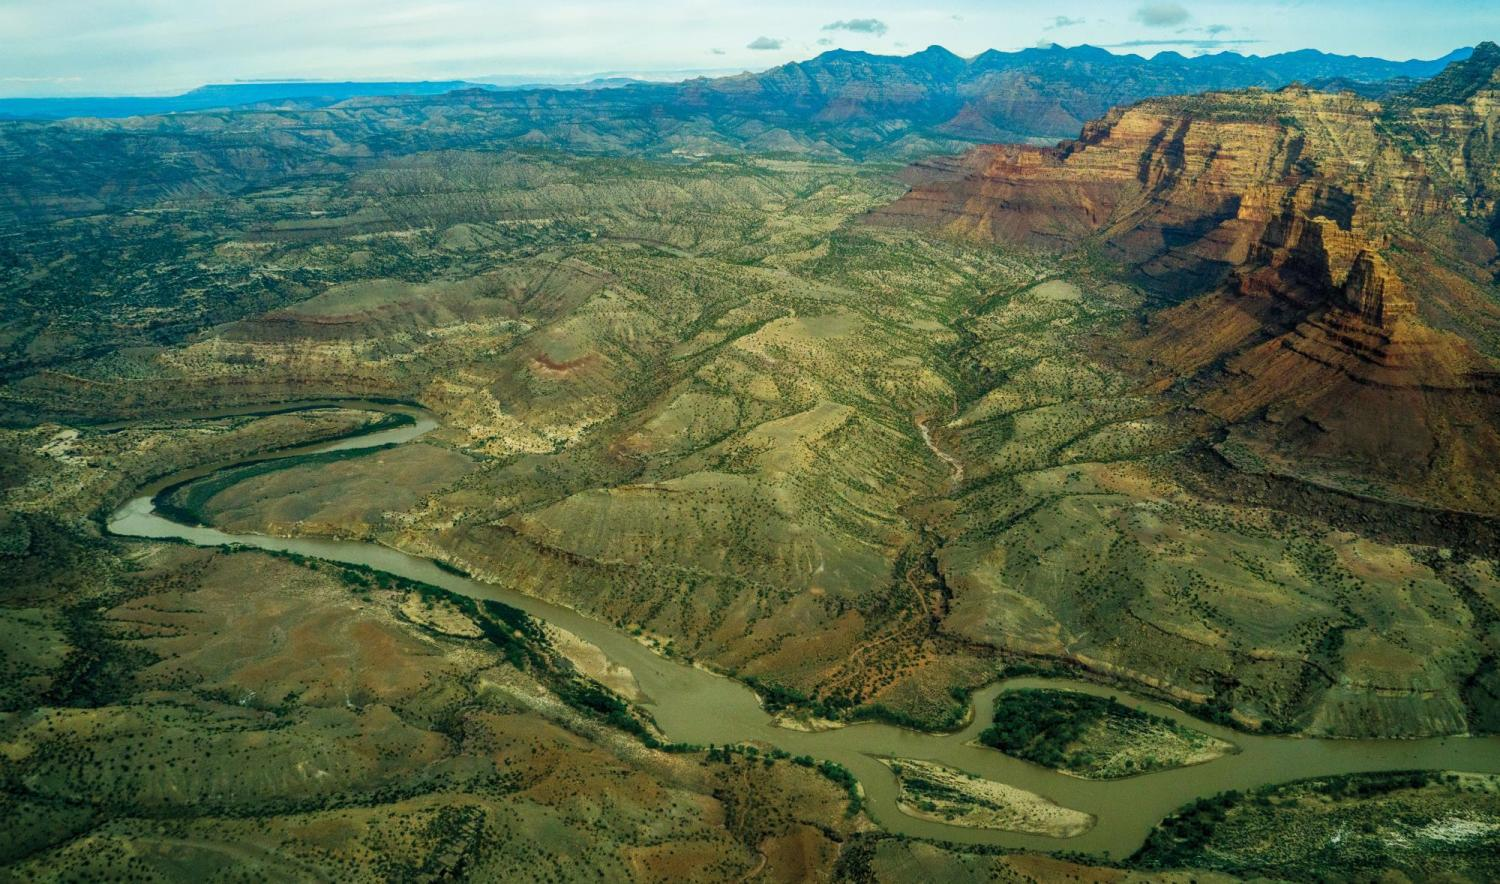 Photograph of The Green River